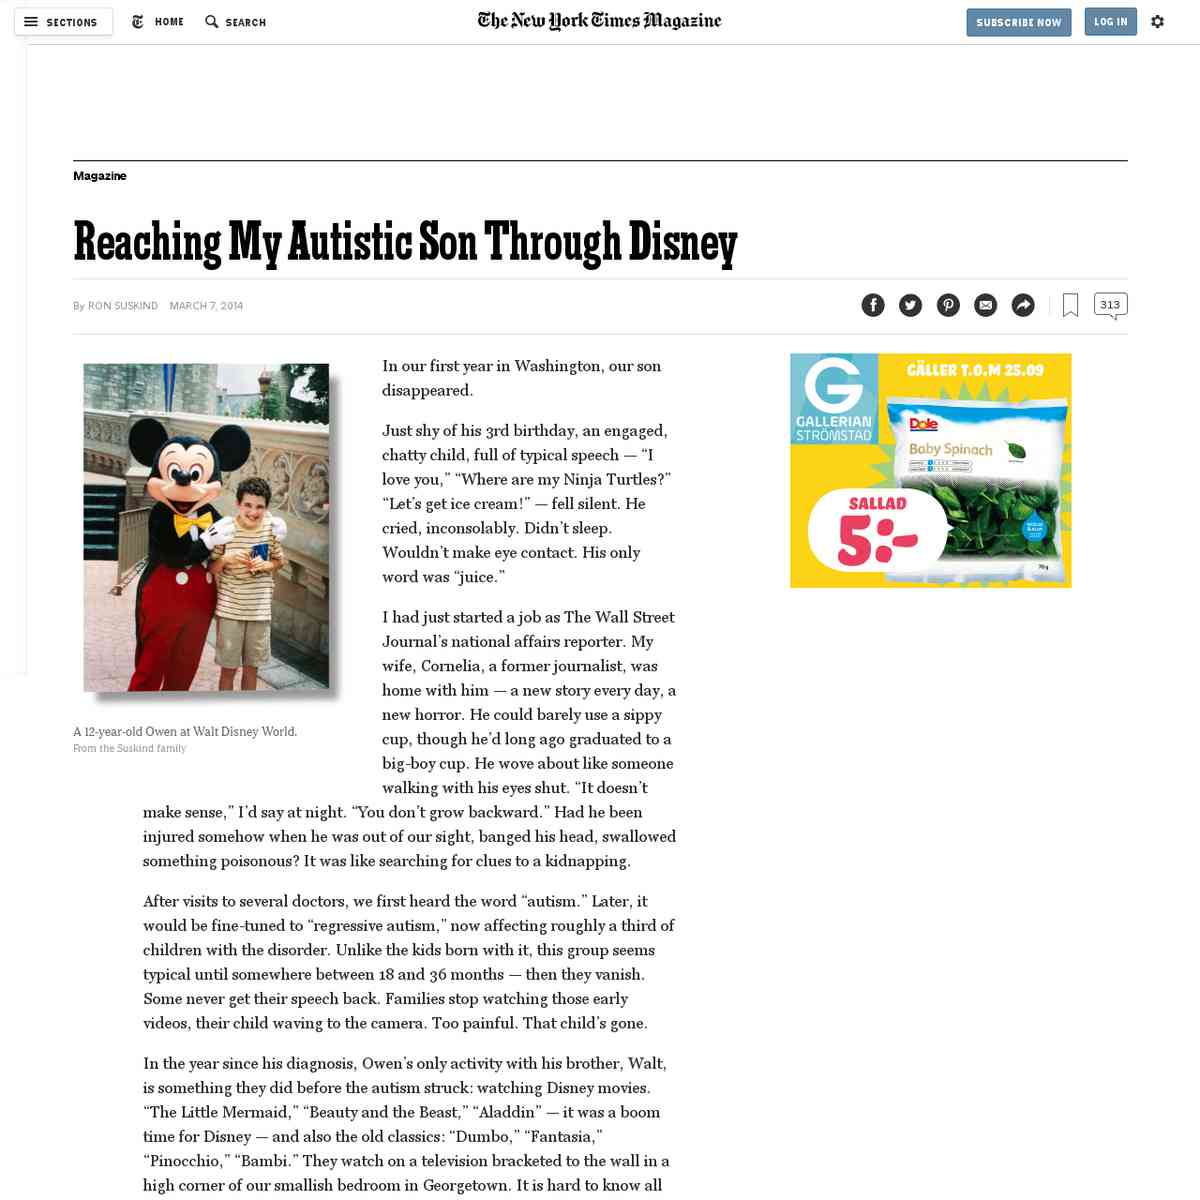 Reaching My Autistic Son Through Disney - NYTimes.com